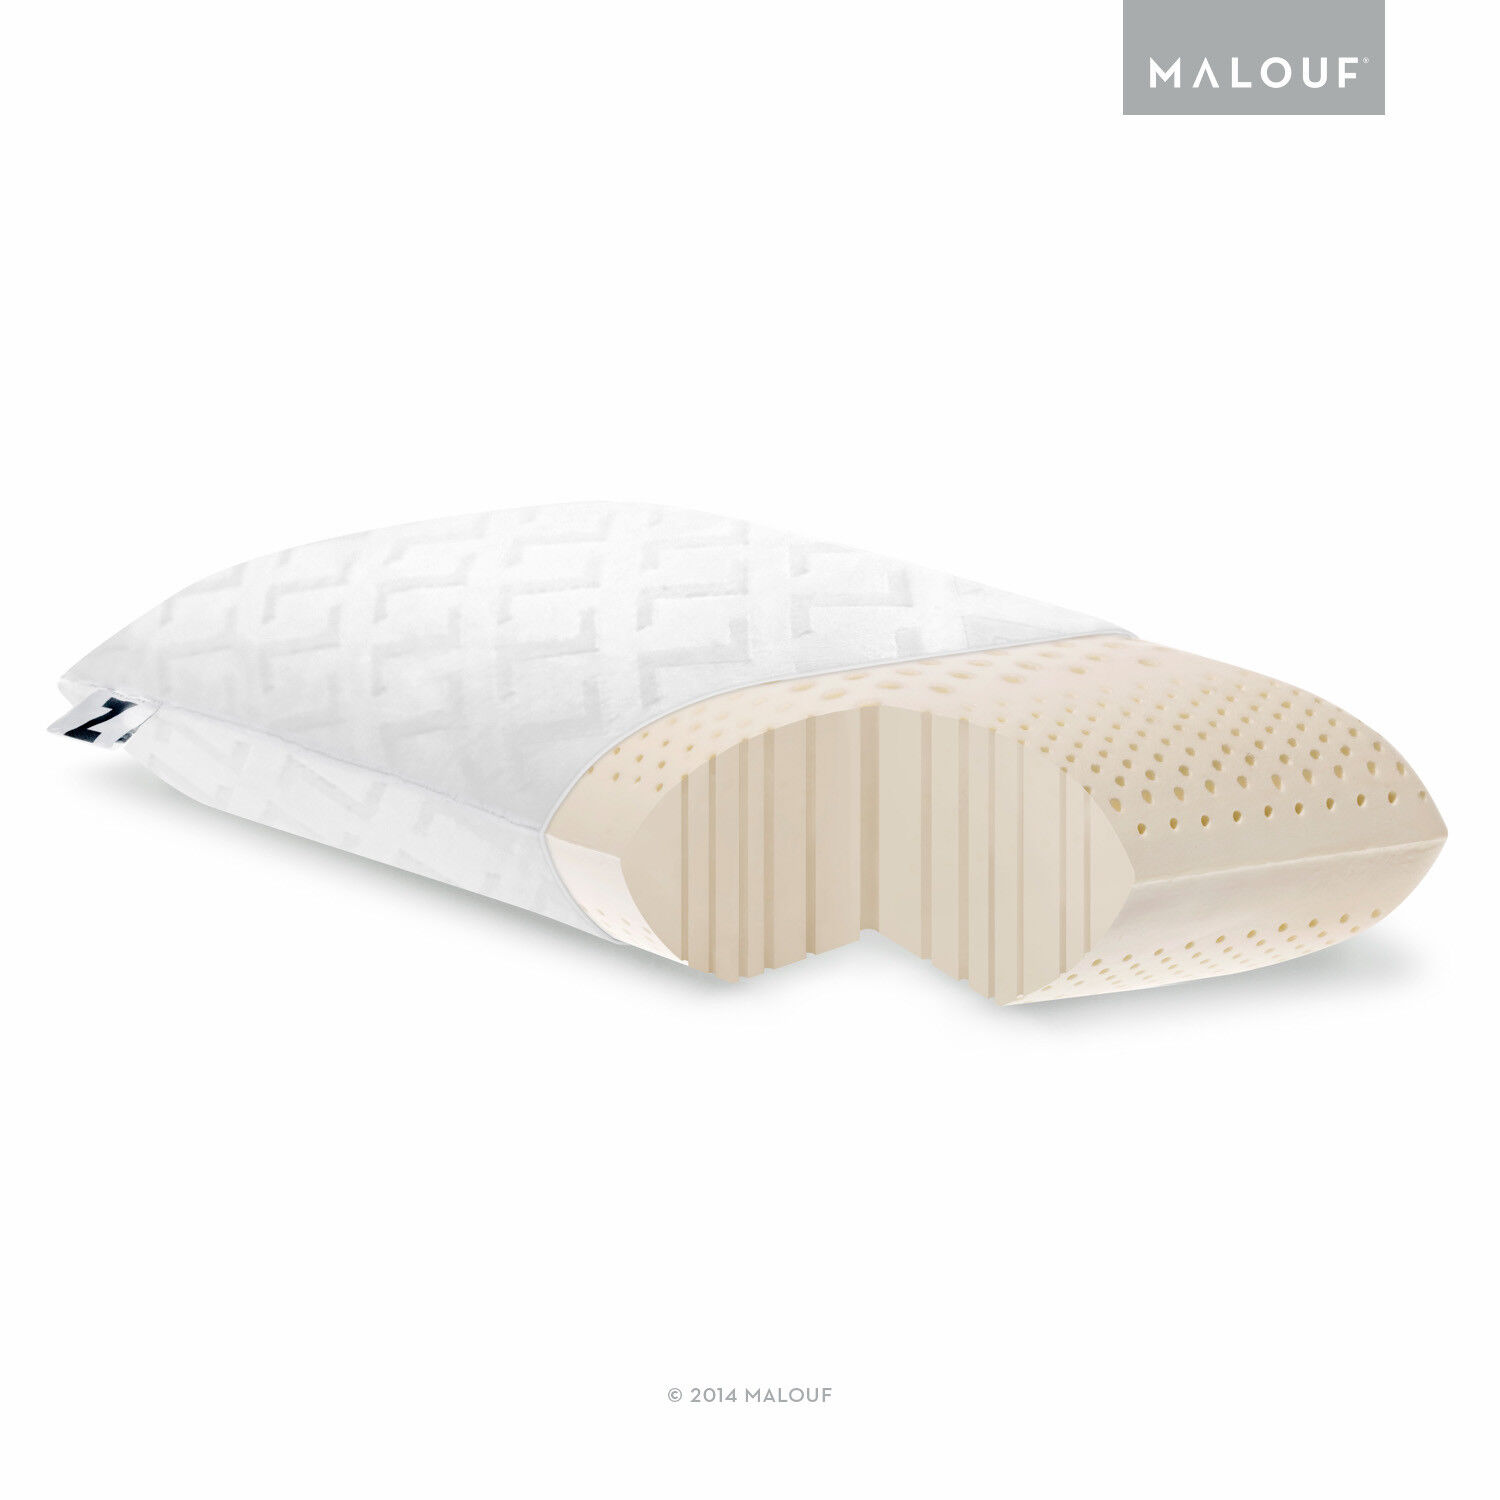 pillow - Z Zoned Talalay Latex Pillow with 100% Cotton Cover - Return Damaged Package